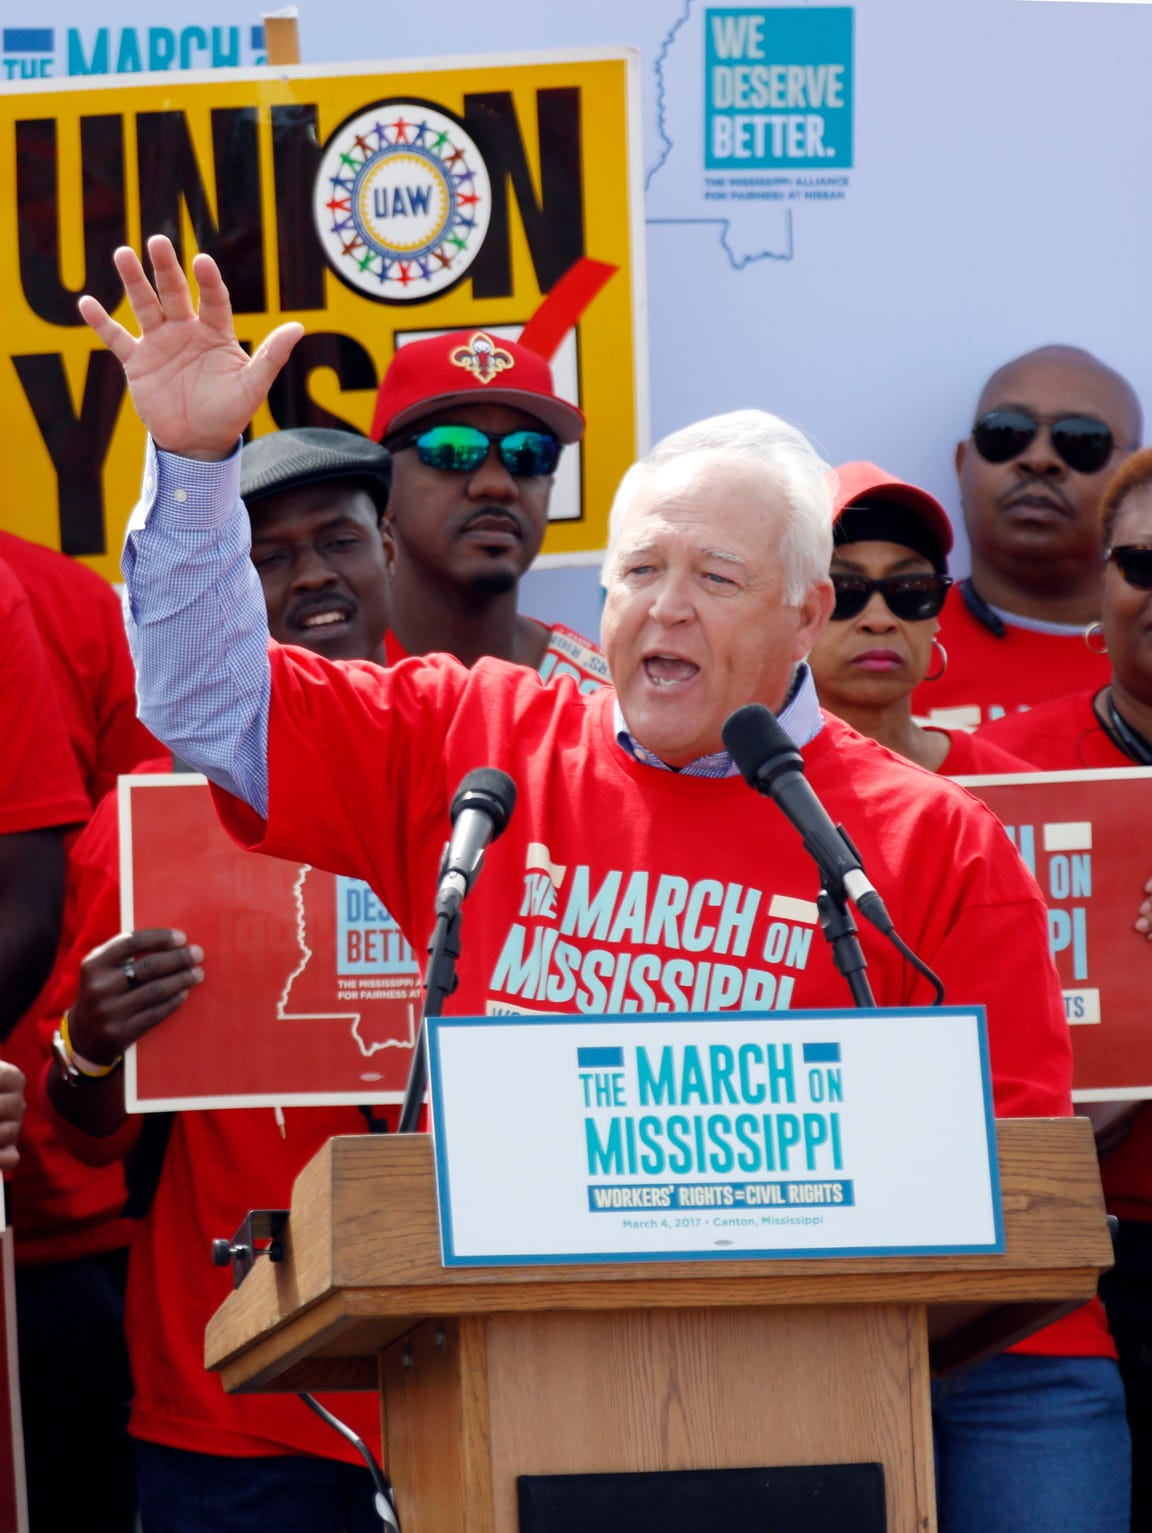 UAW president Dennis Williams calls for auto workers to demand their rights during a speech before thousands gathered at a pro-union rally near Nissan Motor Co.'s Canton, Miss., plant, Saturday, March 4, 2017. Participants marched to the plant to deliver a letter to the company demanding the right to vote on union representation to address better wages, safe working conditions and job security. (AP Photo/Rogelio V. Solis)